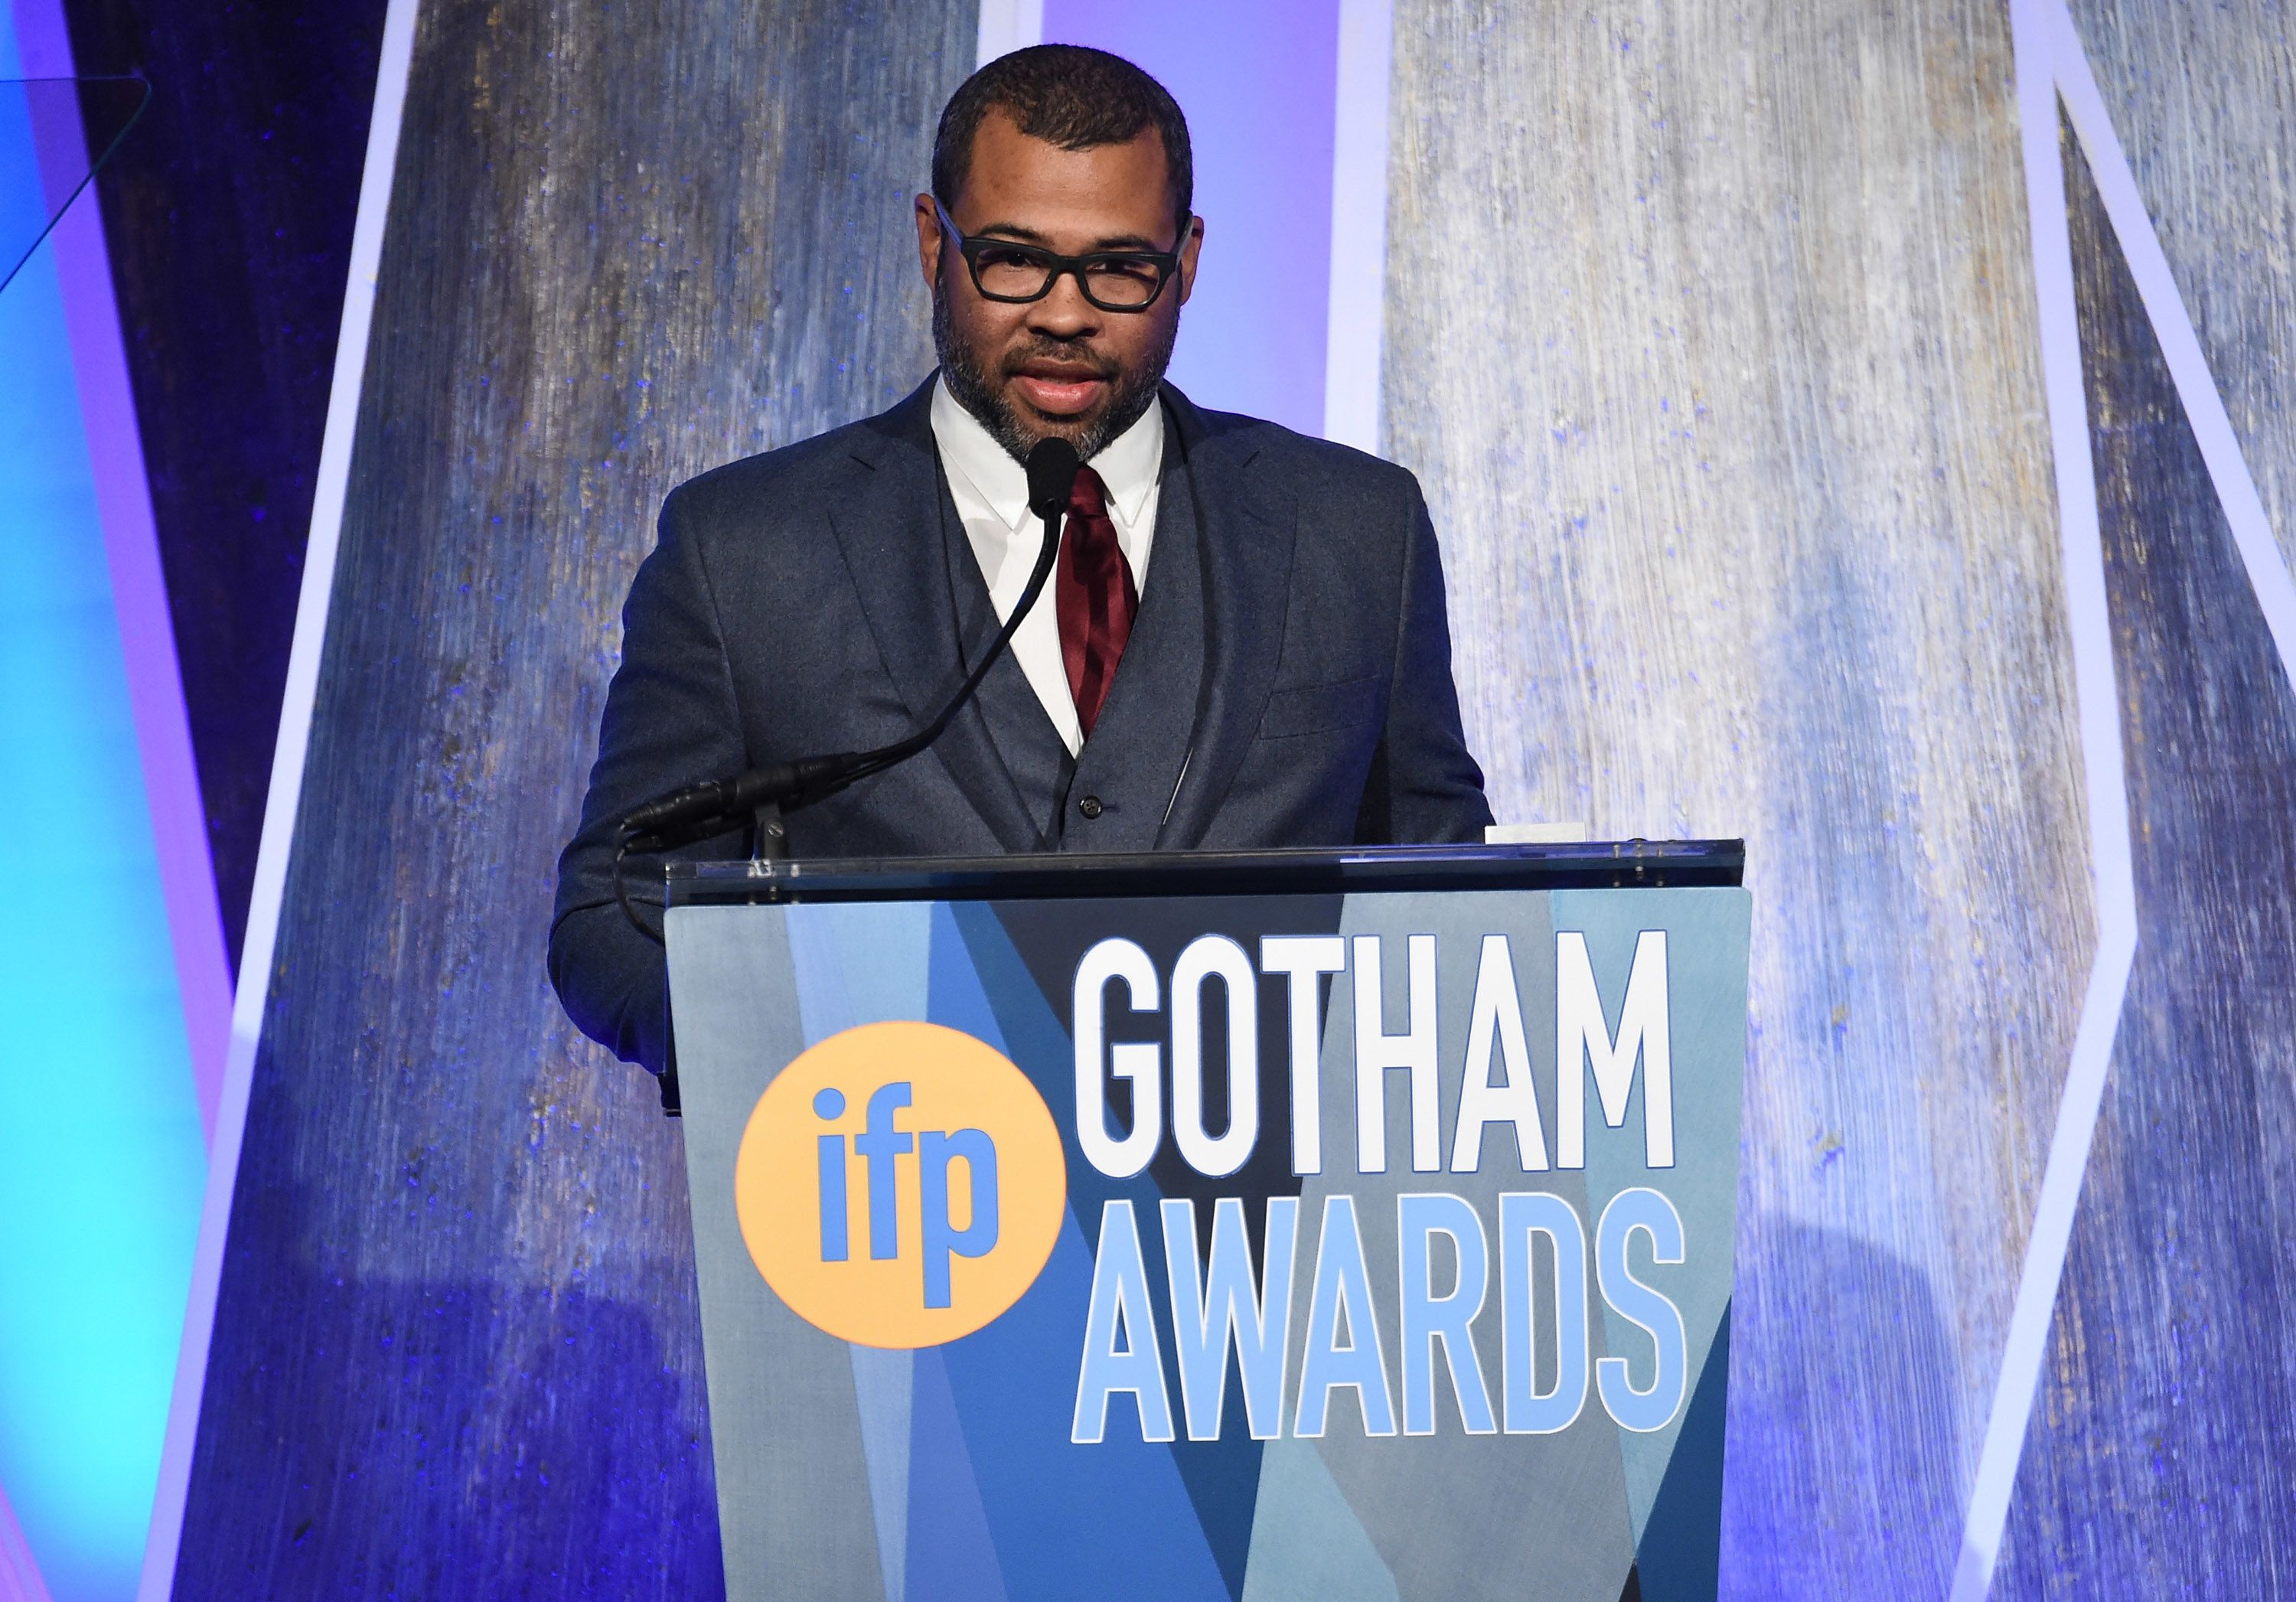 NEW YORK, NY - NOVEMBER 27:  Jordan Peele speaks onstage at the 2017 IFP Gotham Awards at Cipriani Wall Street on November 27, 2017 in New York City.  (Photo by Jamie McCarthy/WireImage)